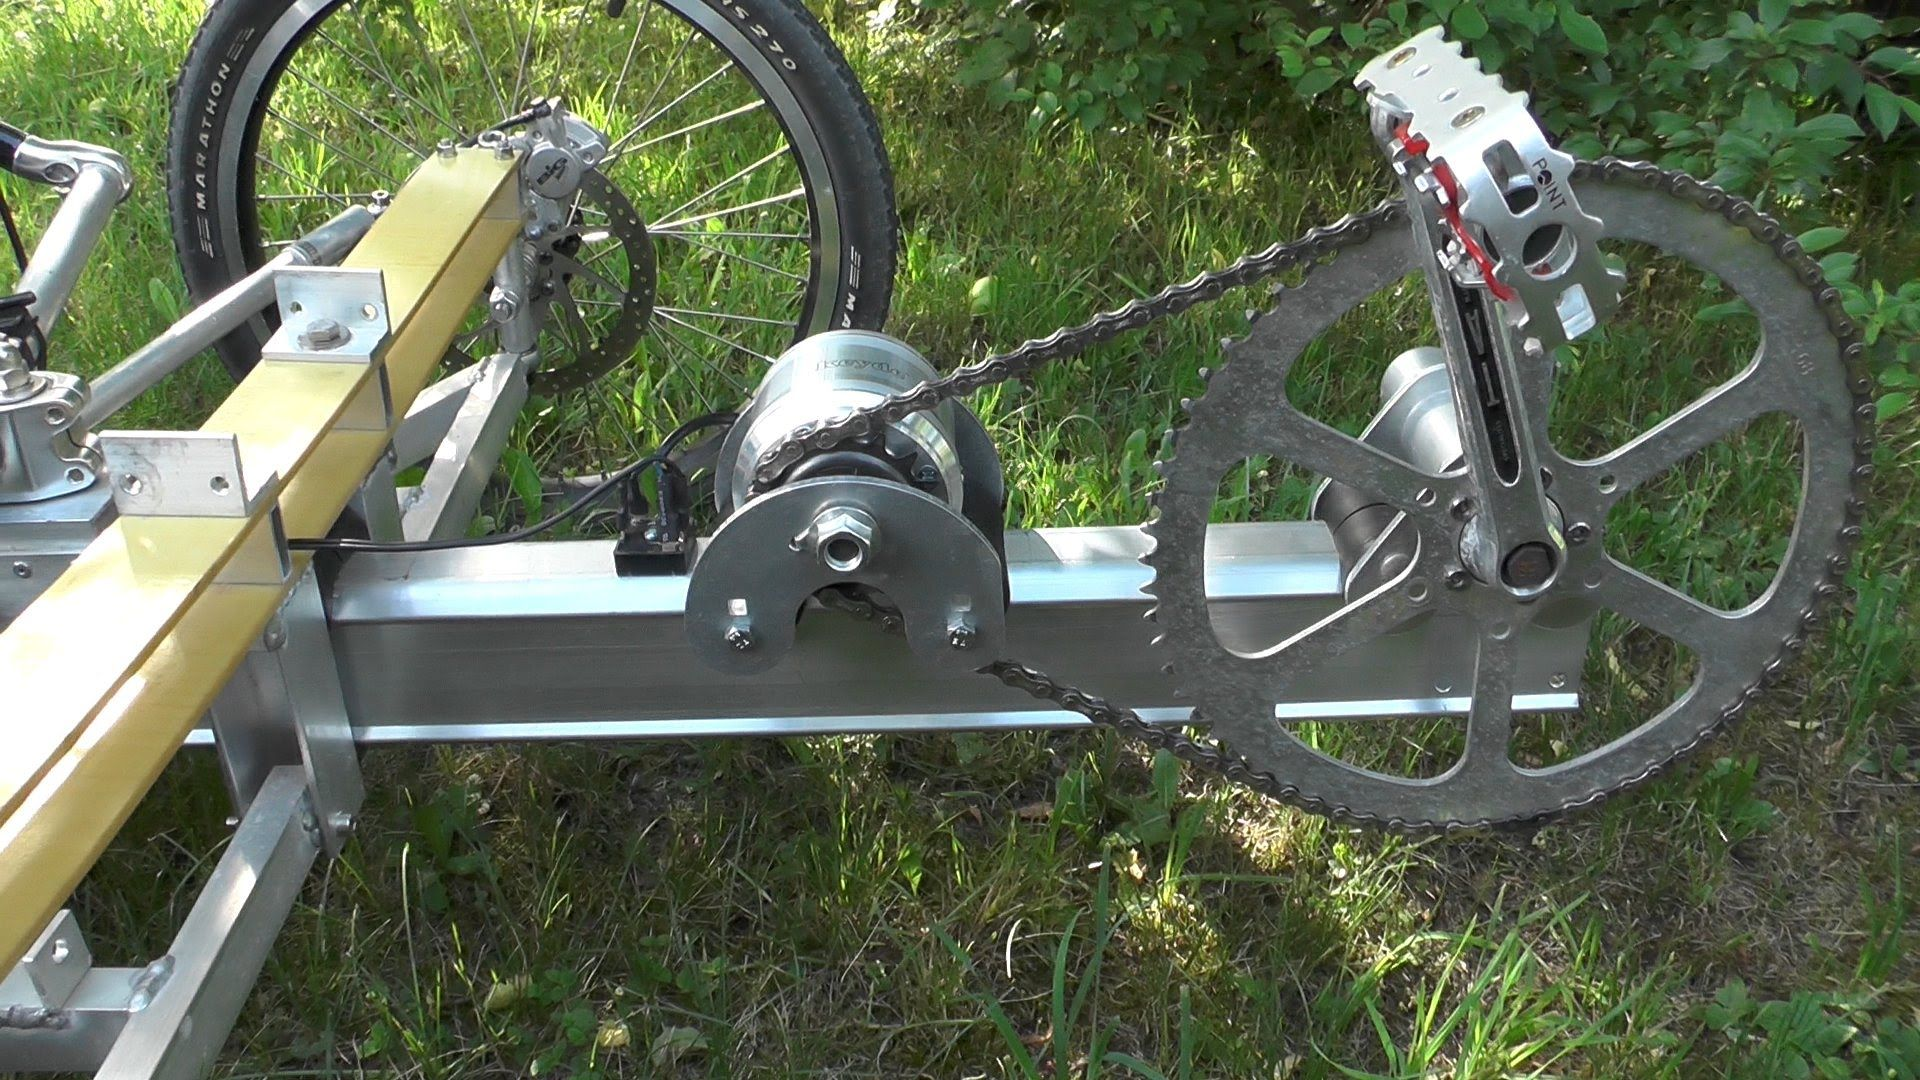 A pedal generator for a chainless bike or human power ...